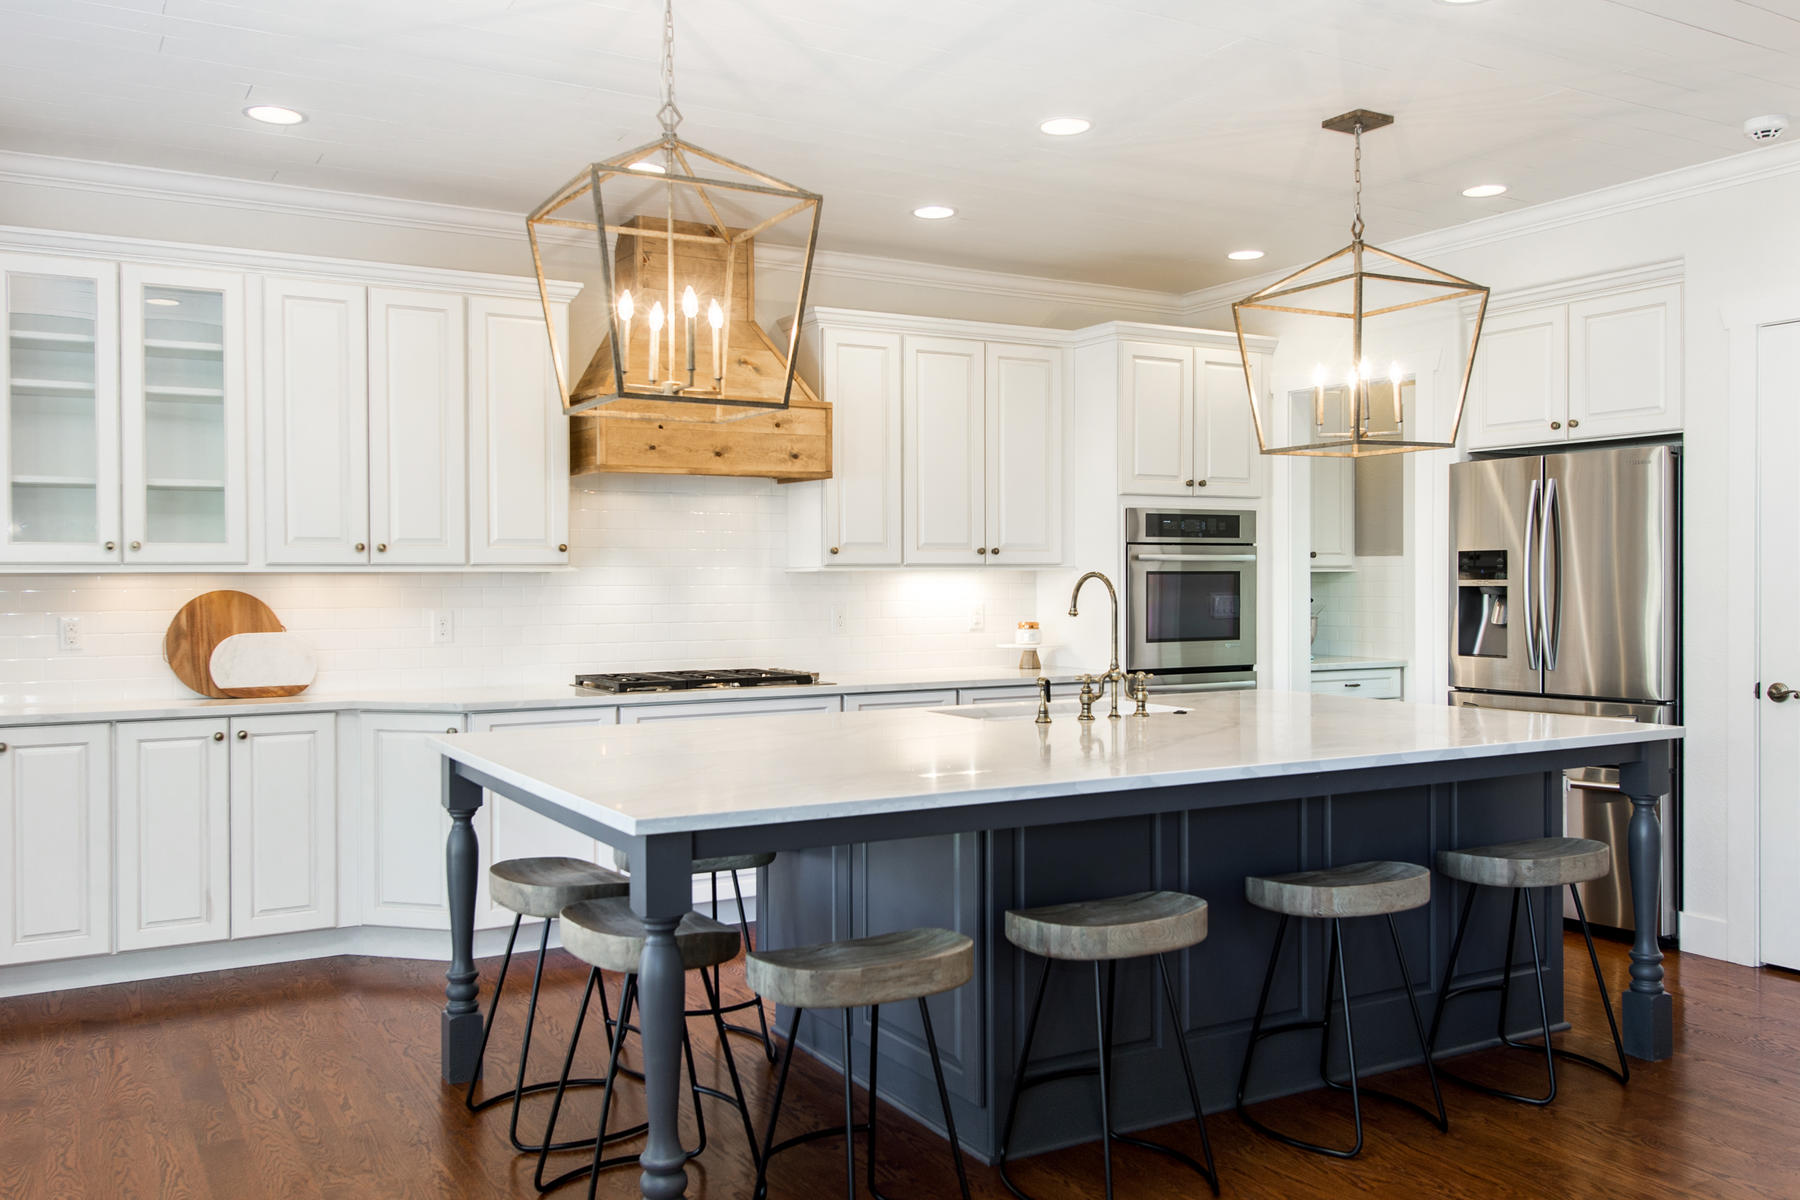 Property for Active at Nearly New Custom Home in Plum Creek! 244 Cheney Place Castle Rock, Colorado 80104 United States